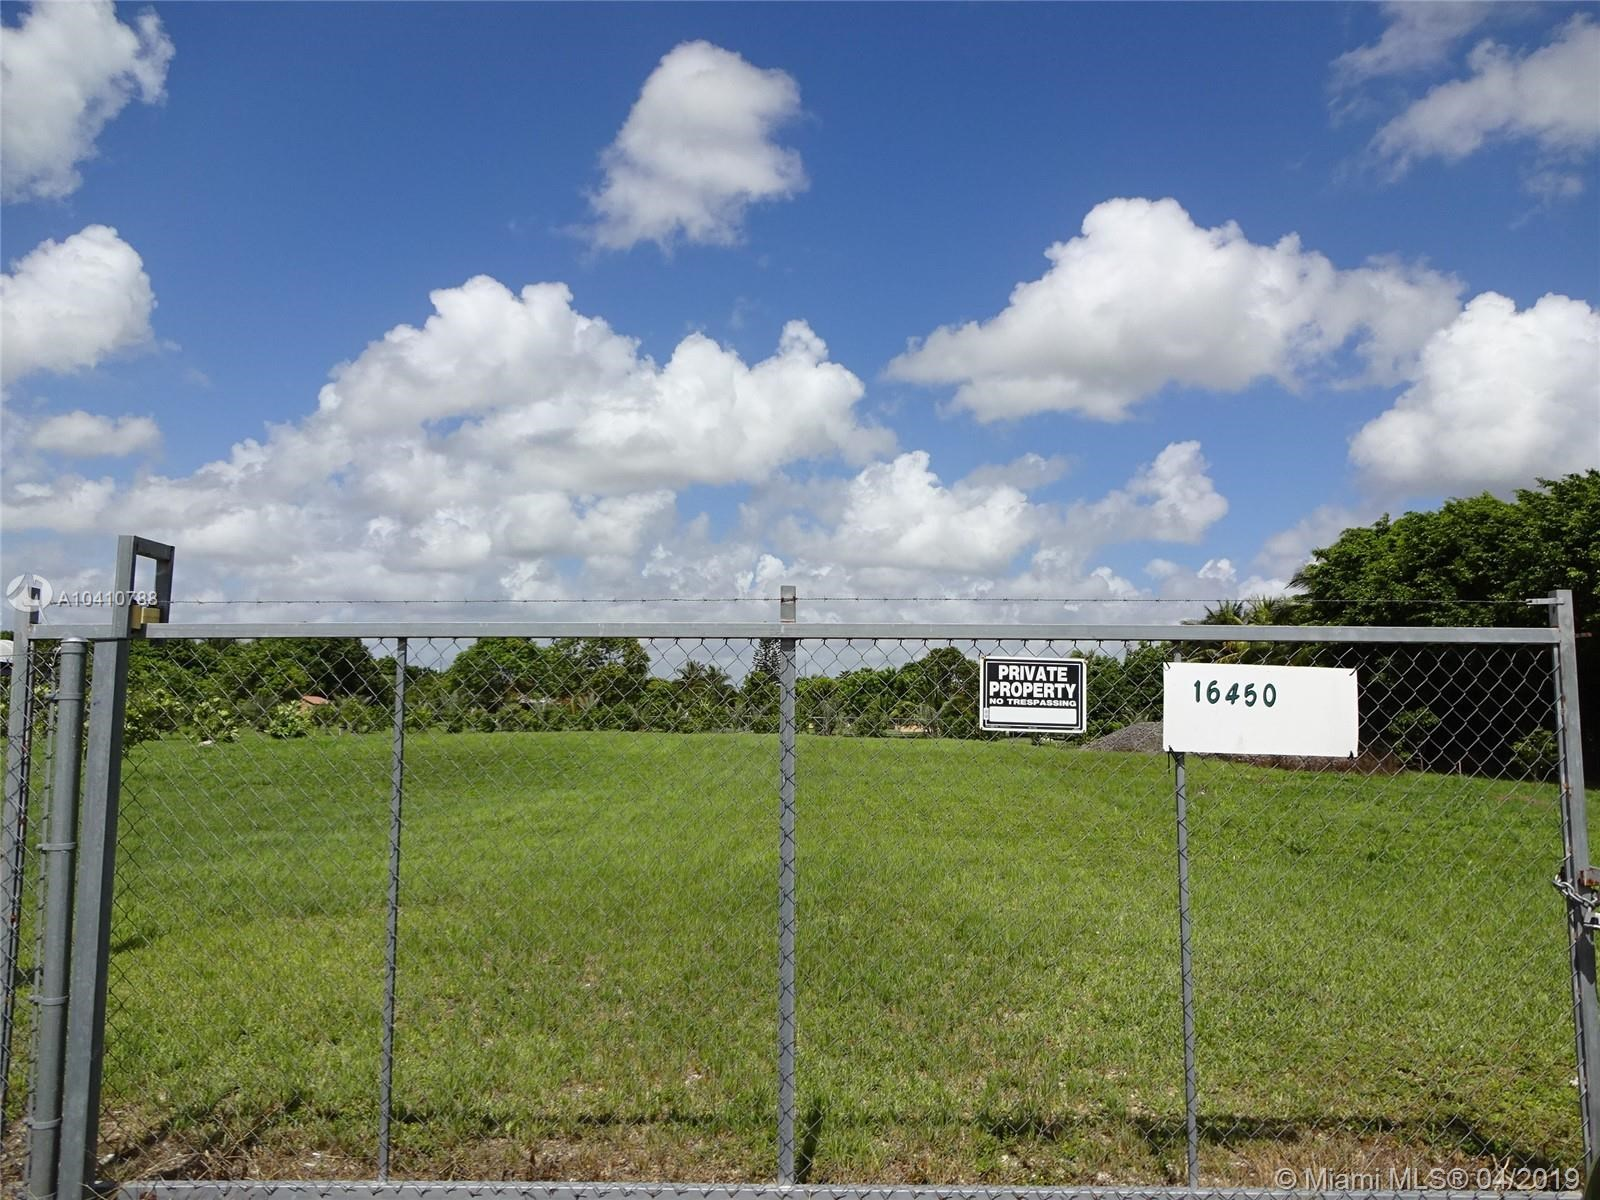 16450 approx SW 172 Ave, Homestead, FL 33187